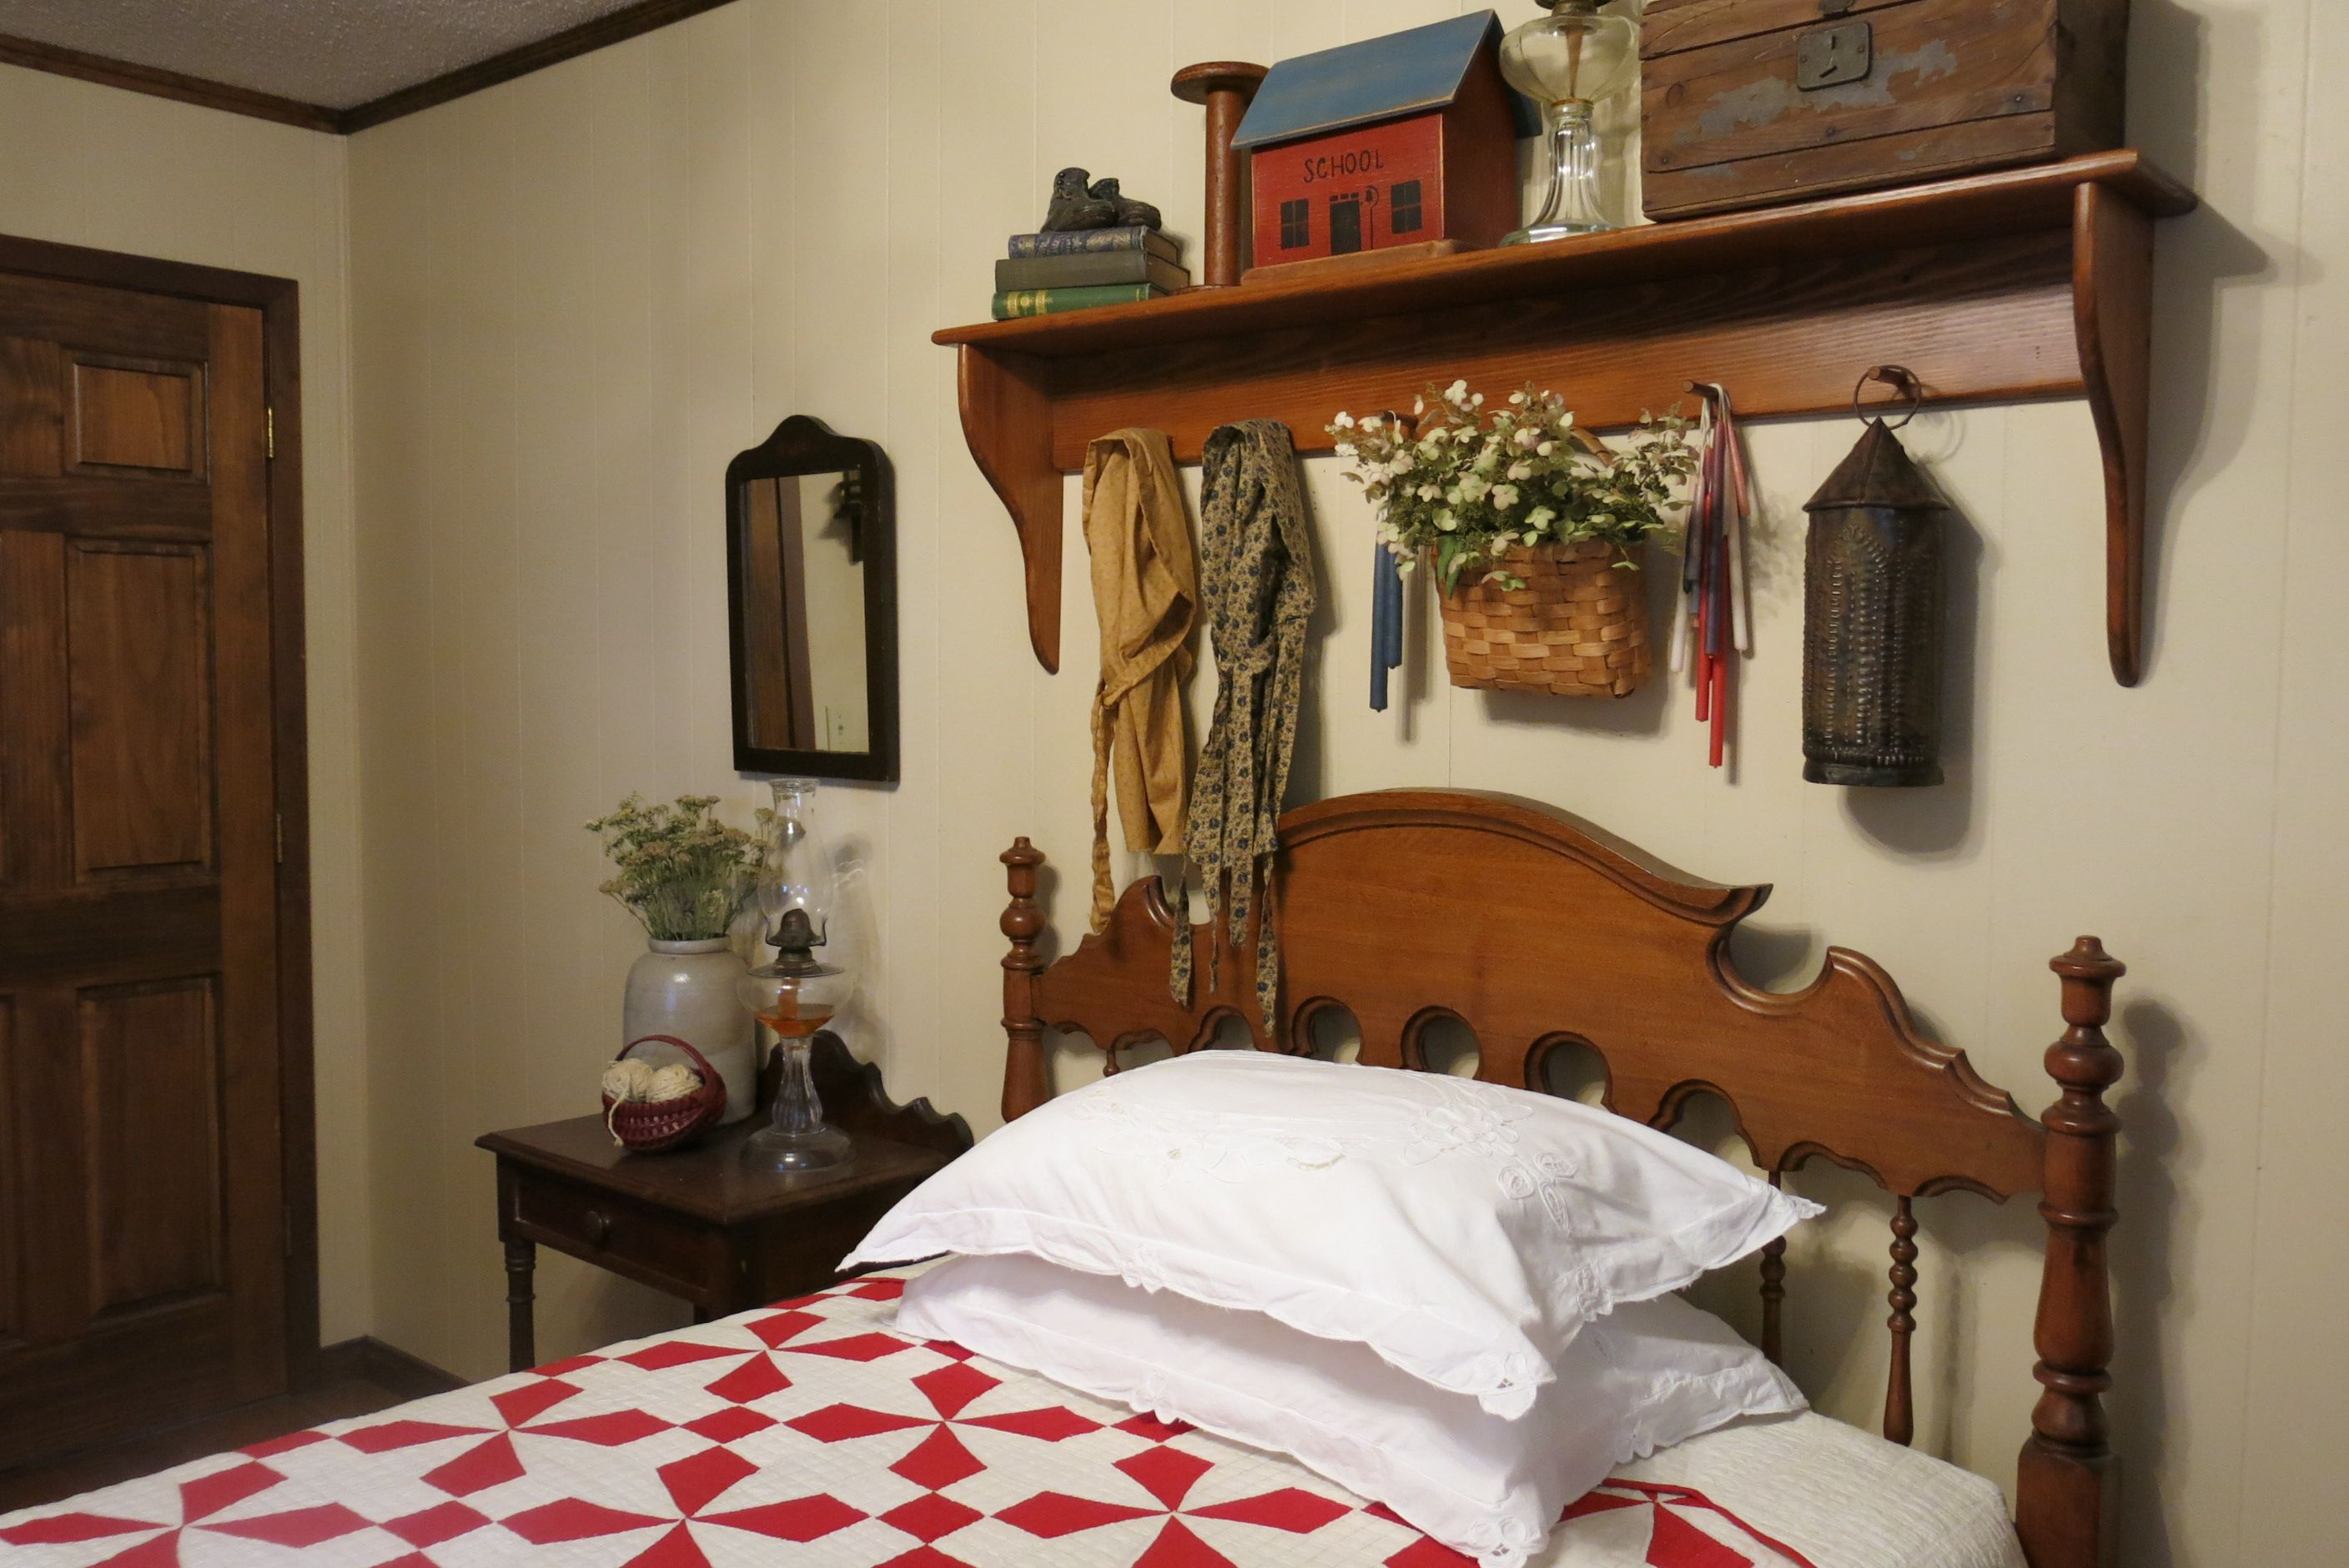 cheap primitive country bedroom decorating ideas | Country/prim bedroom | Primitive bedroom, Country style ...